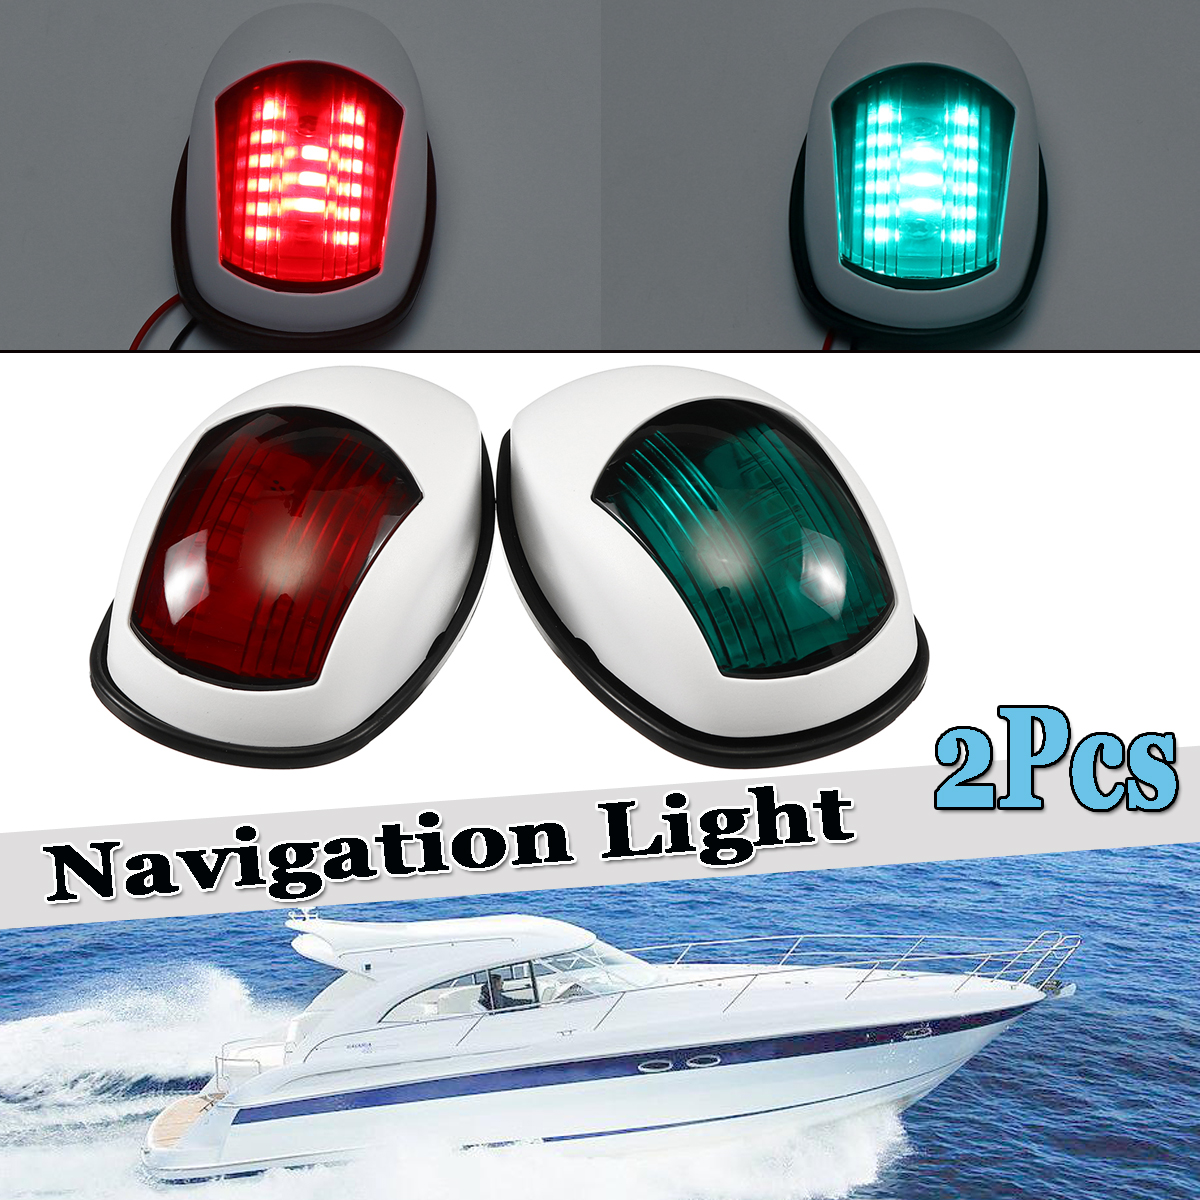 24v Marine Boat Bulb Light 25w Navigation Light Signal Lamp All Round 360 Degree Night Lighting Marine Hardware